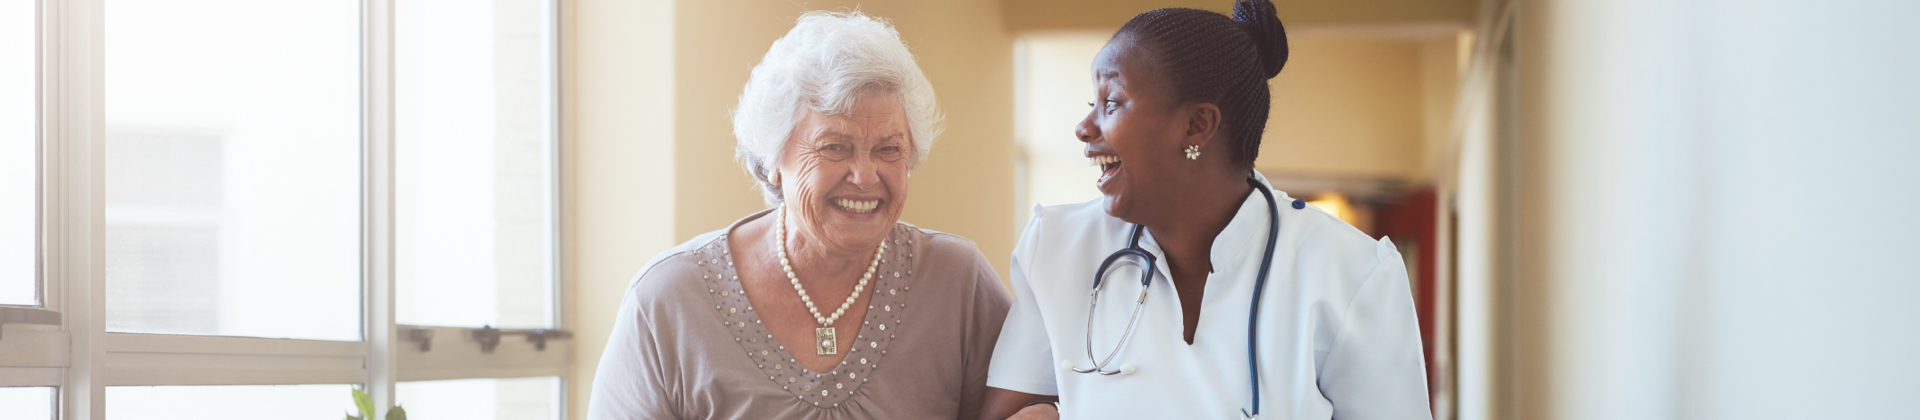 A health care professional laughs with the resident while walking a senior woman down a hallway